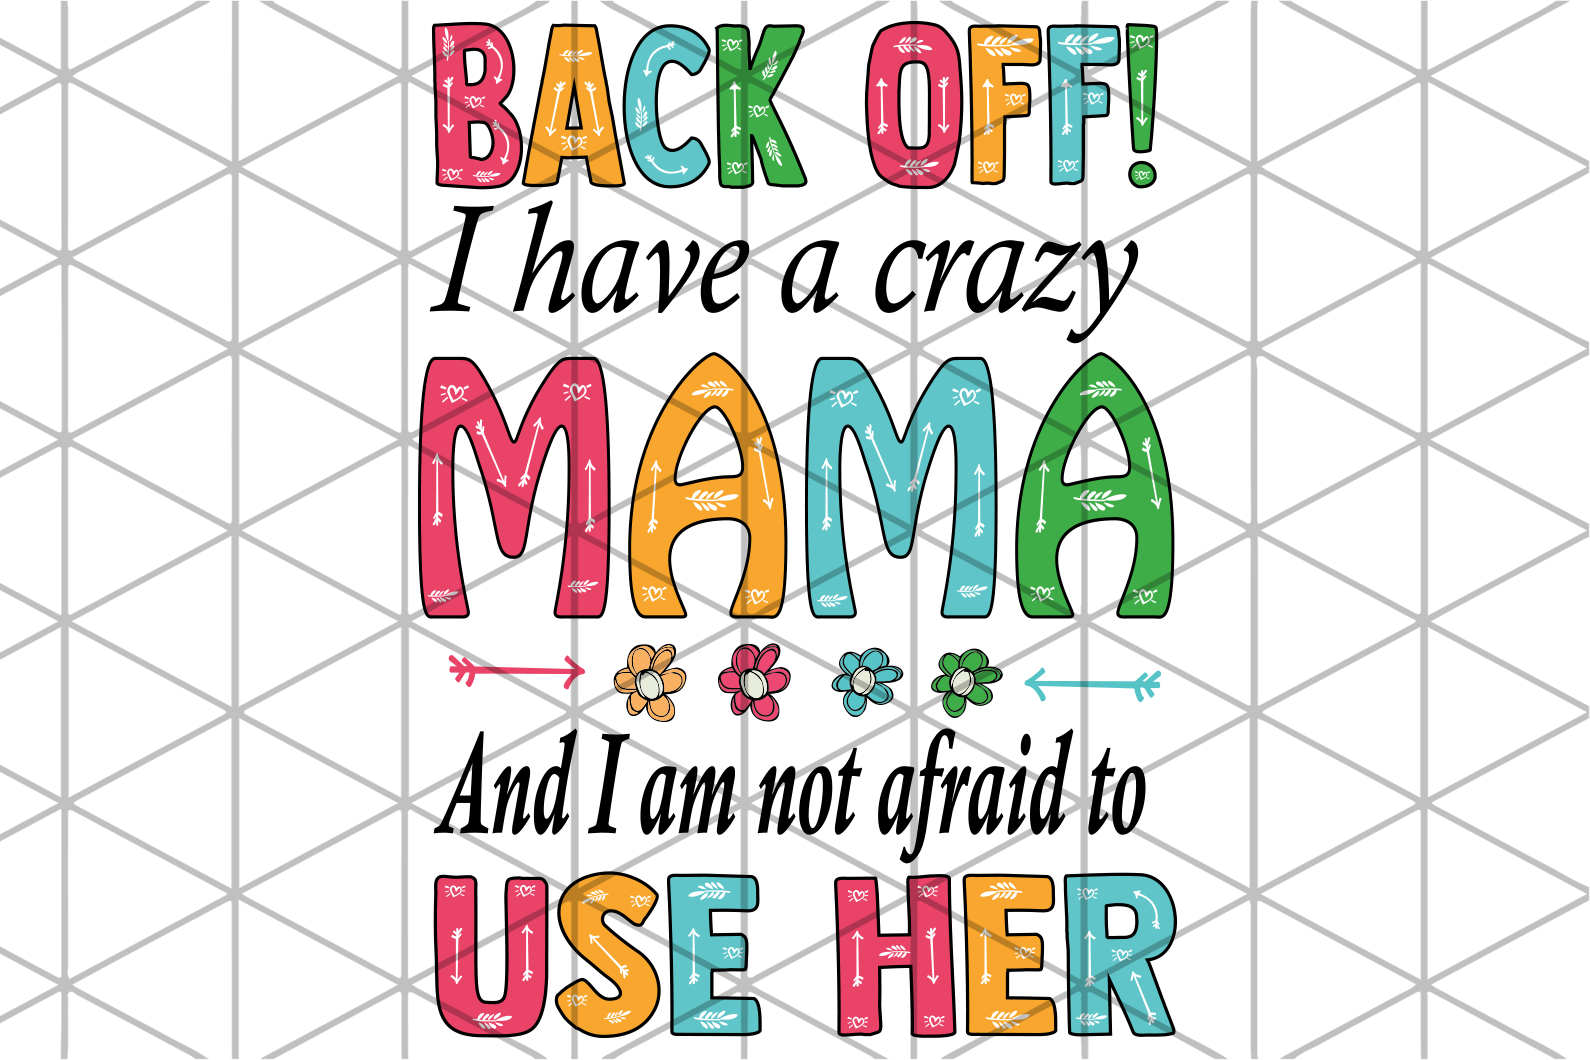 Back off I have a crazy mama, mama svg, mama gift,  family svg, family shirt,husband svg, husband gift, husband shirt, love husband, best husband ever,amily gift,trending svg, Files For Silhouette, Files For Cricut, SVG, DXF, EPS, PNG, Instant Download